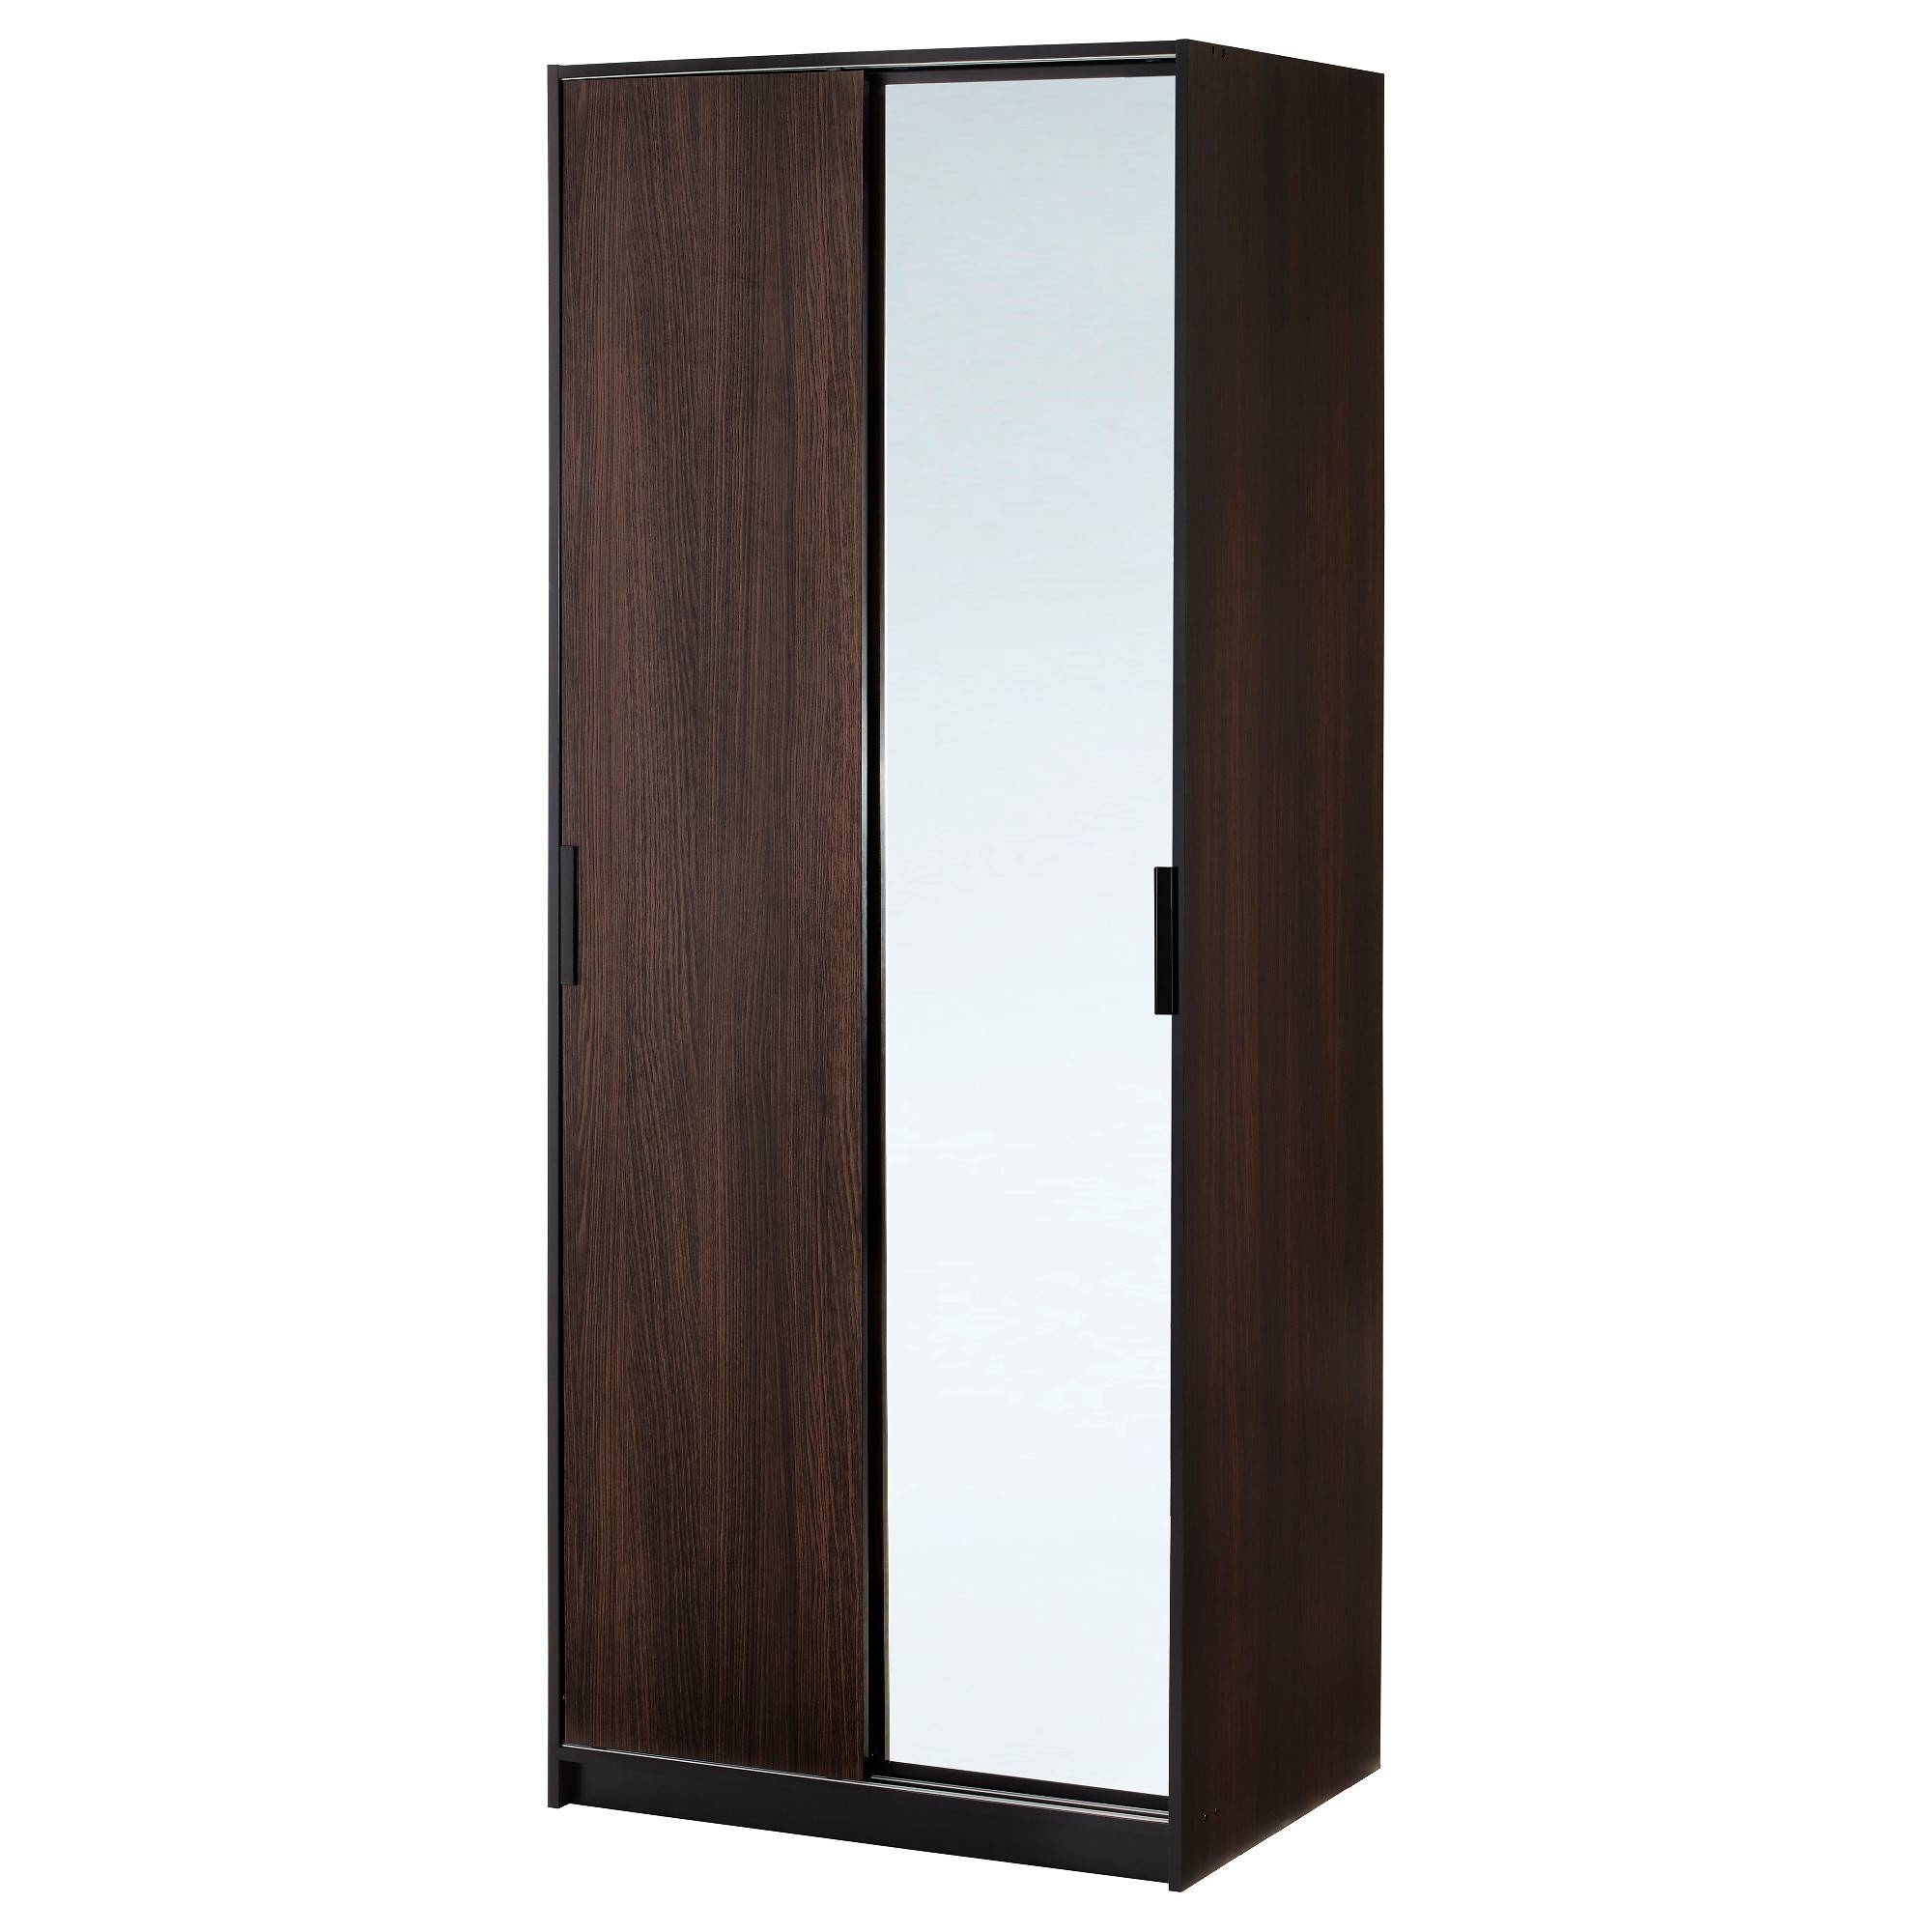 Wardrobes, Armoires & Closets - Ikea throughout 1 Door Mirrored Wardrobes (Image 14 of 15)